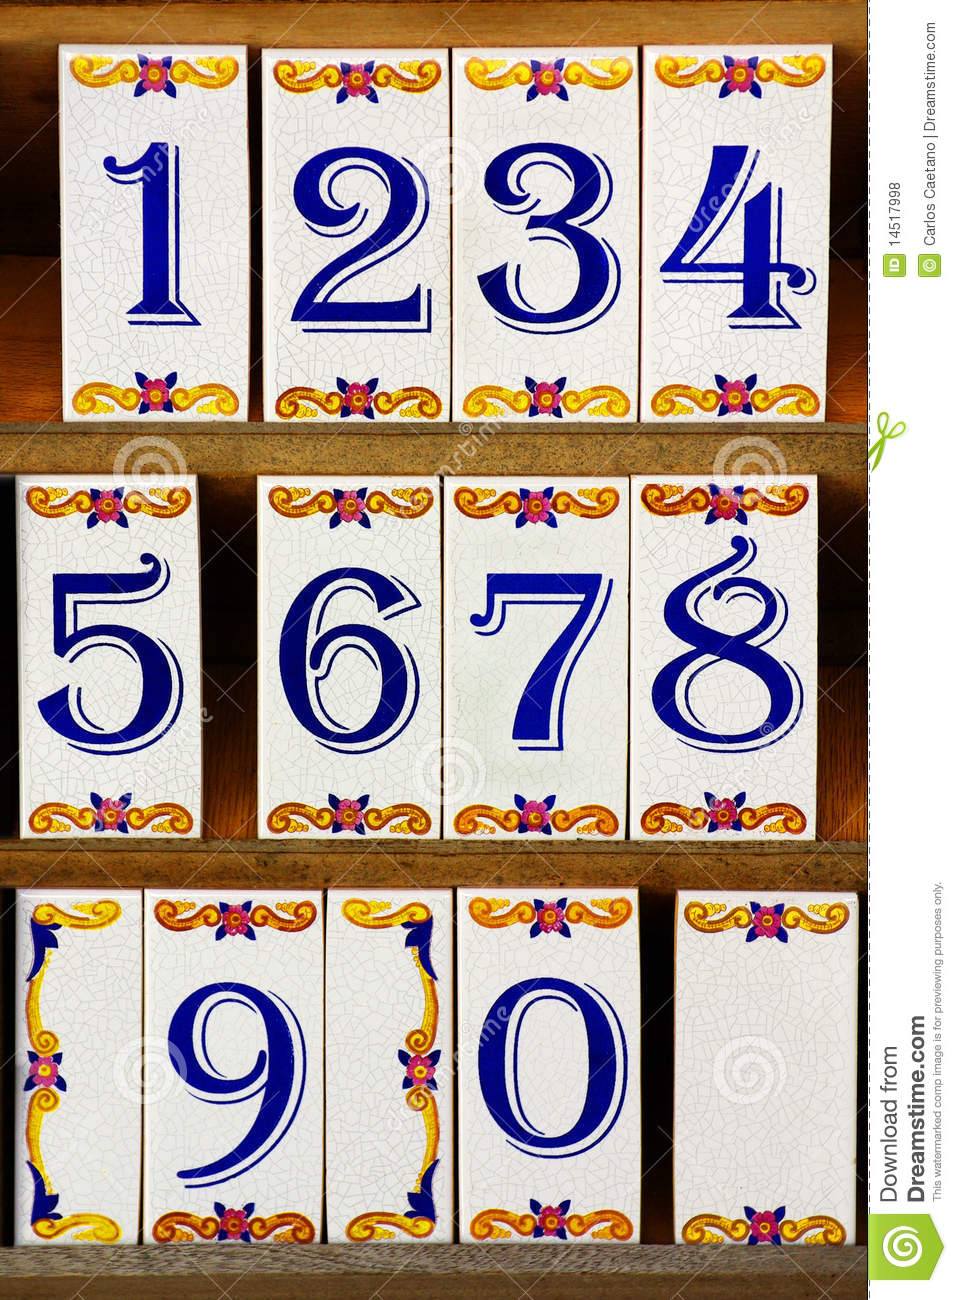 Number Tiles Royalty Free Stock Photos Image 14517998